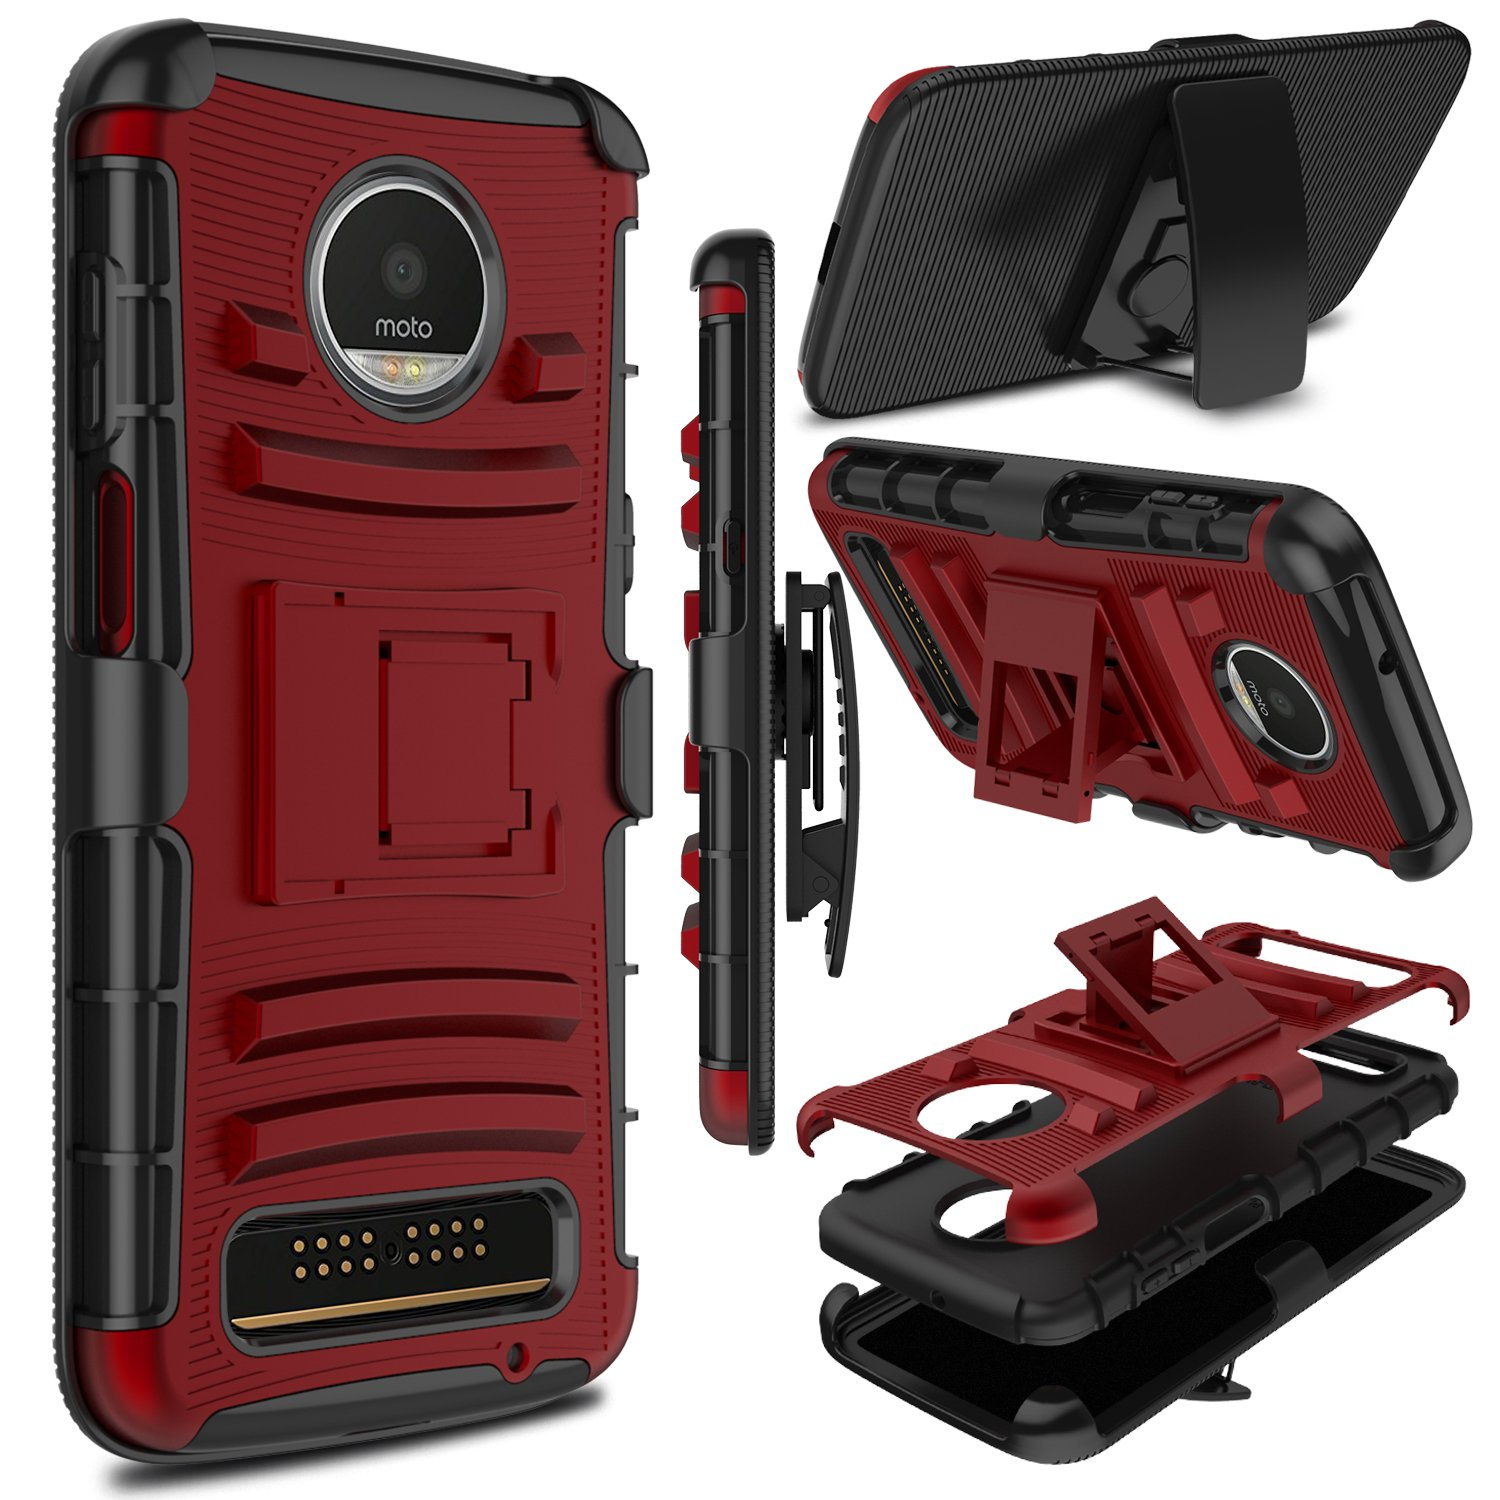 size 40 87db2 dfd8f Moto Z3 Play Case, Moto Z3 Case, Zenic Heavy Duty Shockproof Full-Body  Protective Hybrid Case Cover with Swivel Belt Clip and Kickstand for  Motorola ...